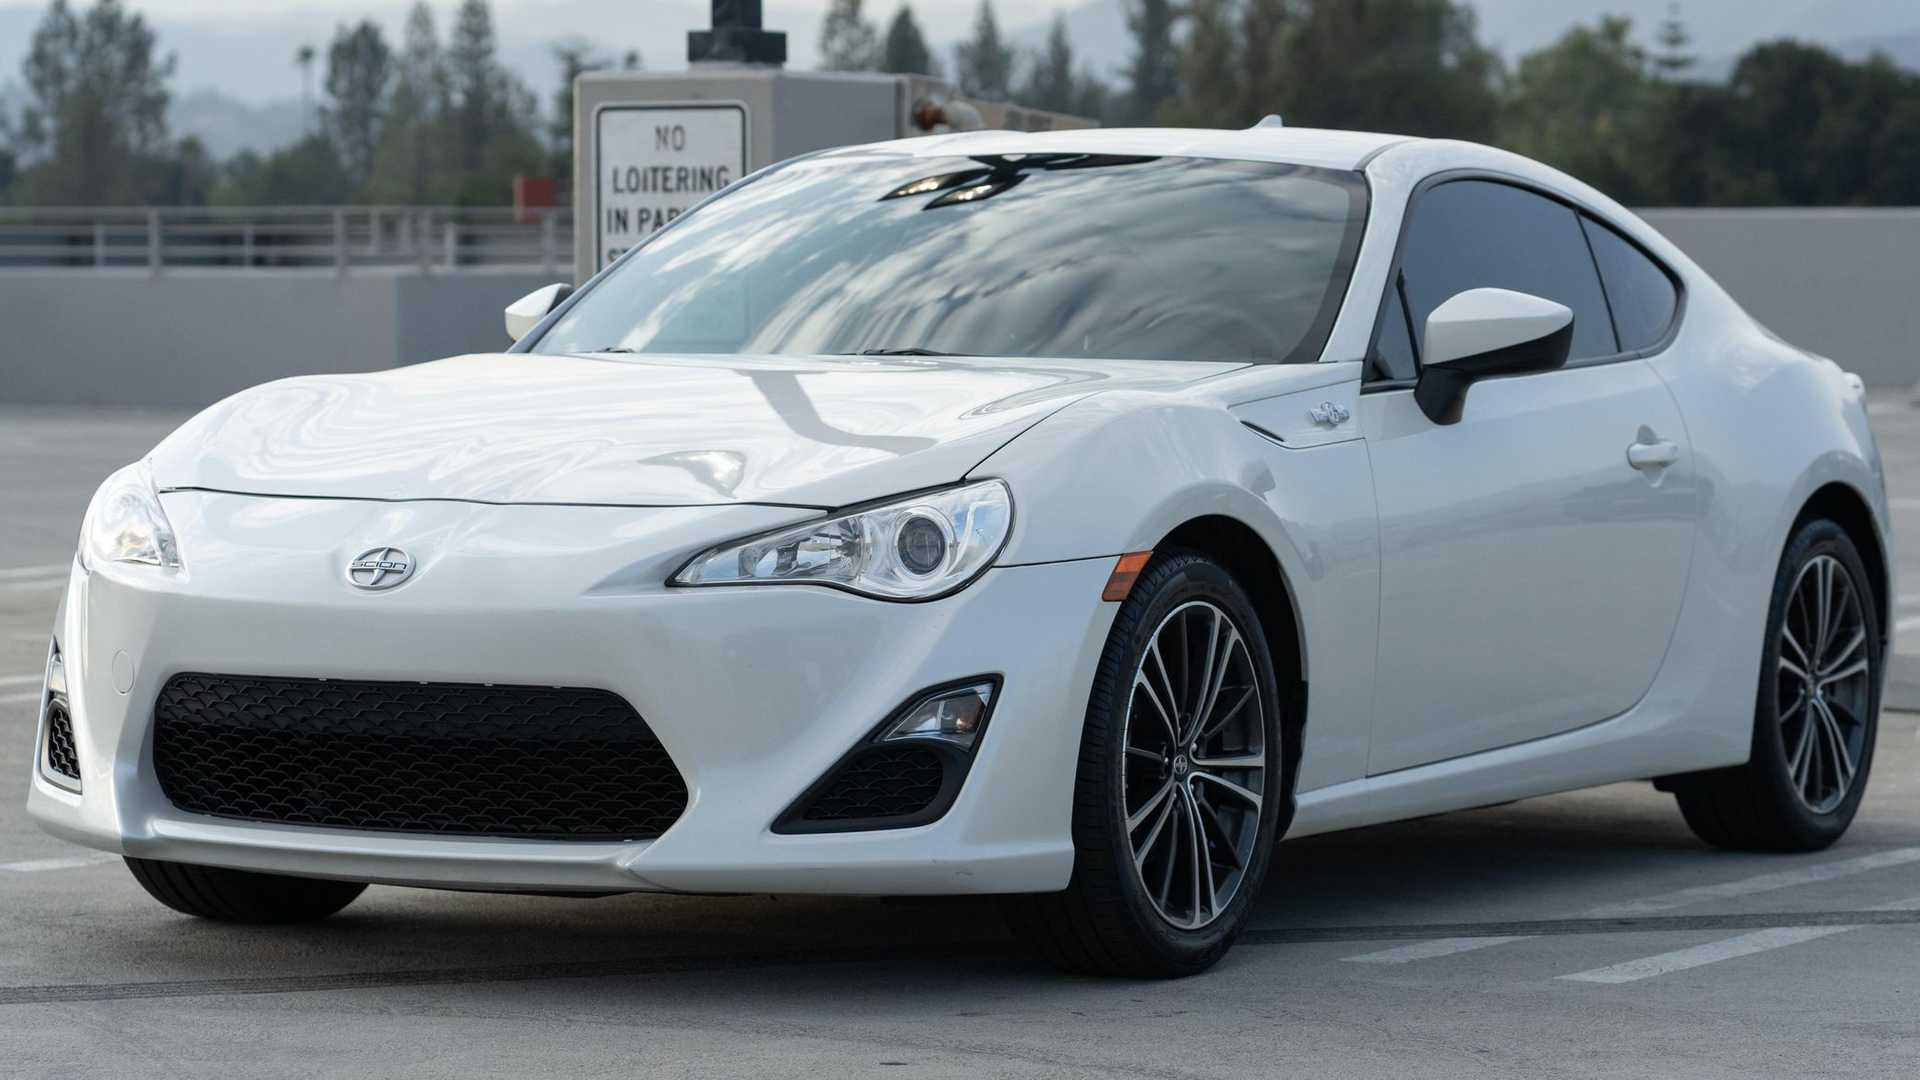 https://cdn.motor1.com/images/mgl/QjBQ3/s6/first-scion-fr-s-in-us-for-sale-three-quarters.jpg